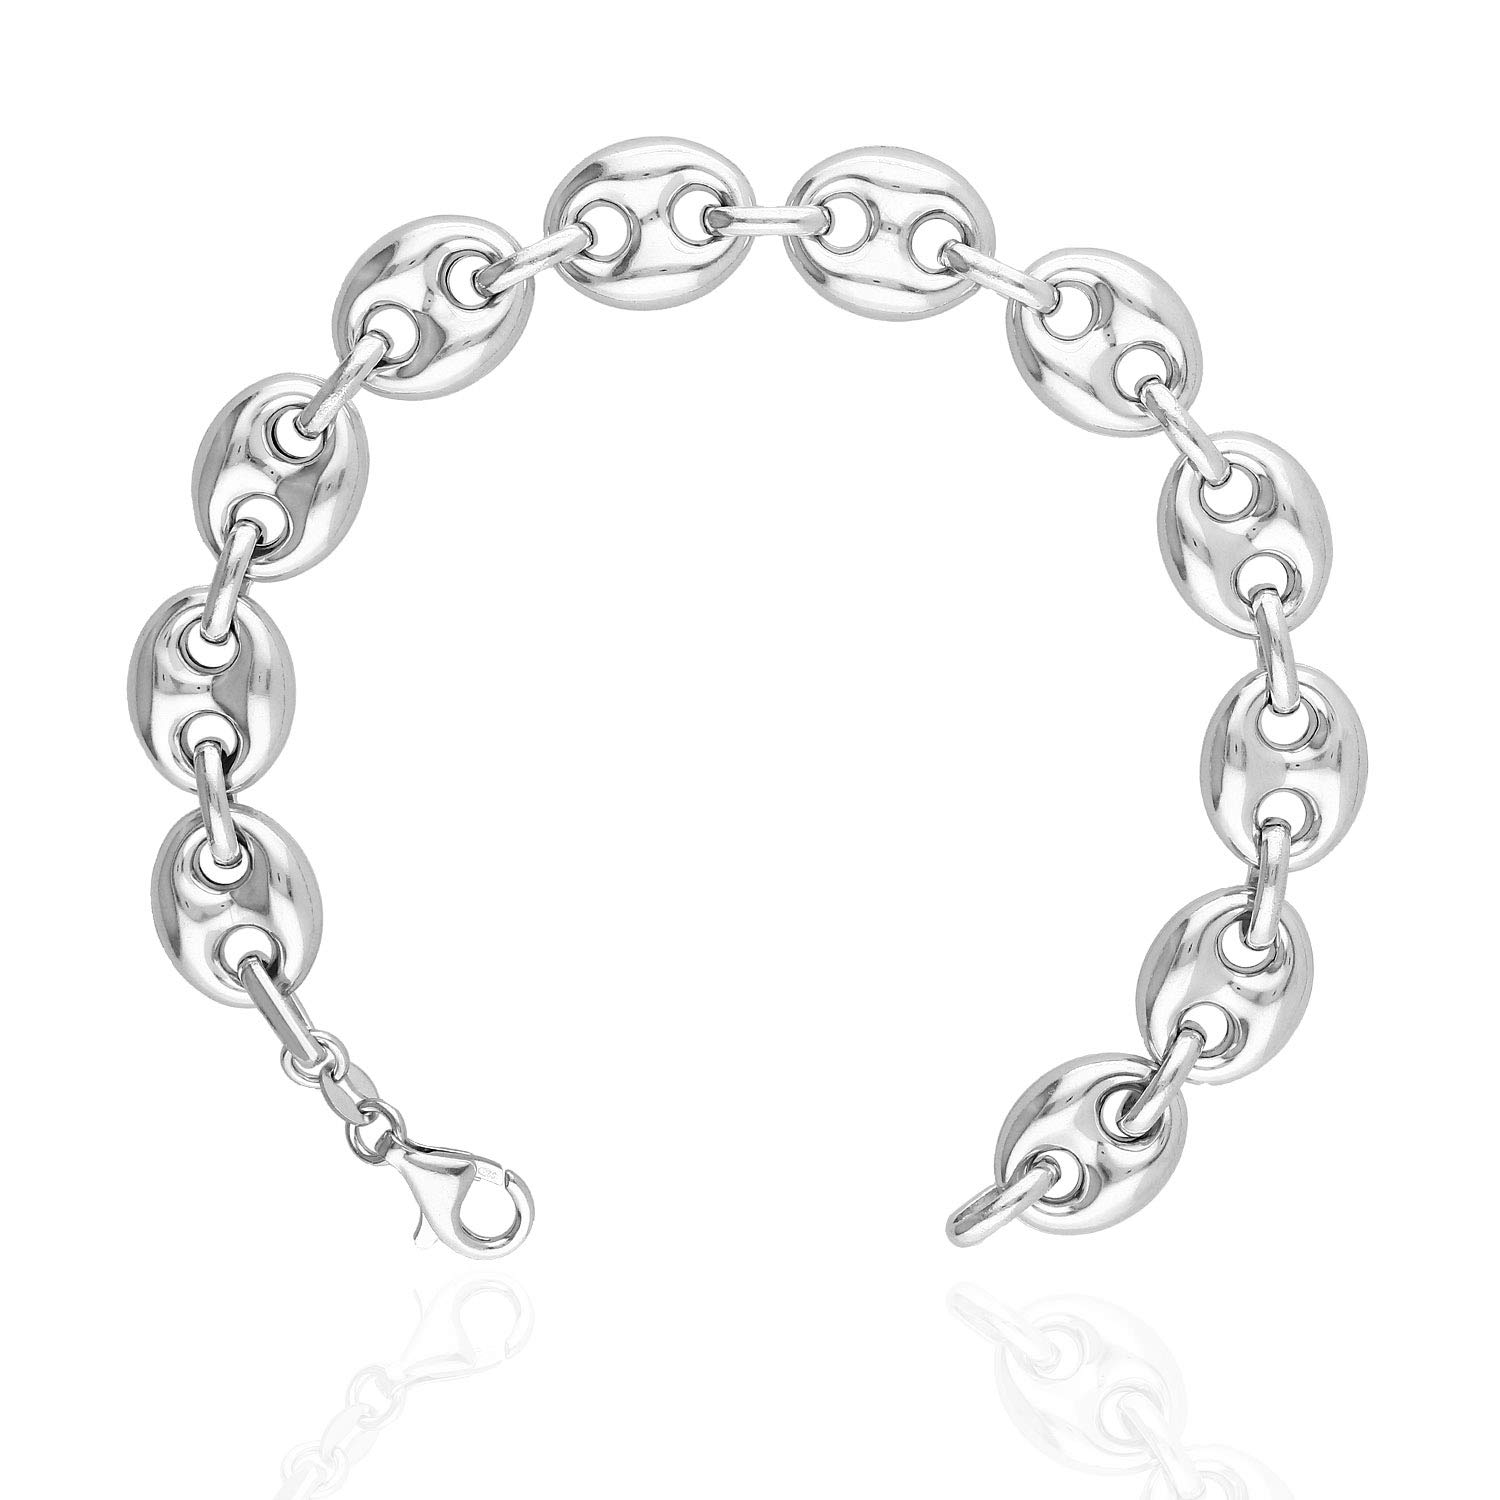 Italy 925 Sterling Silver 12mm Puffed Anchor Mariner Link Chain Bracelet 8.5''